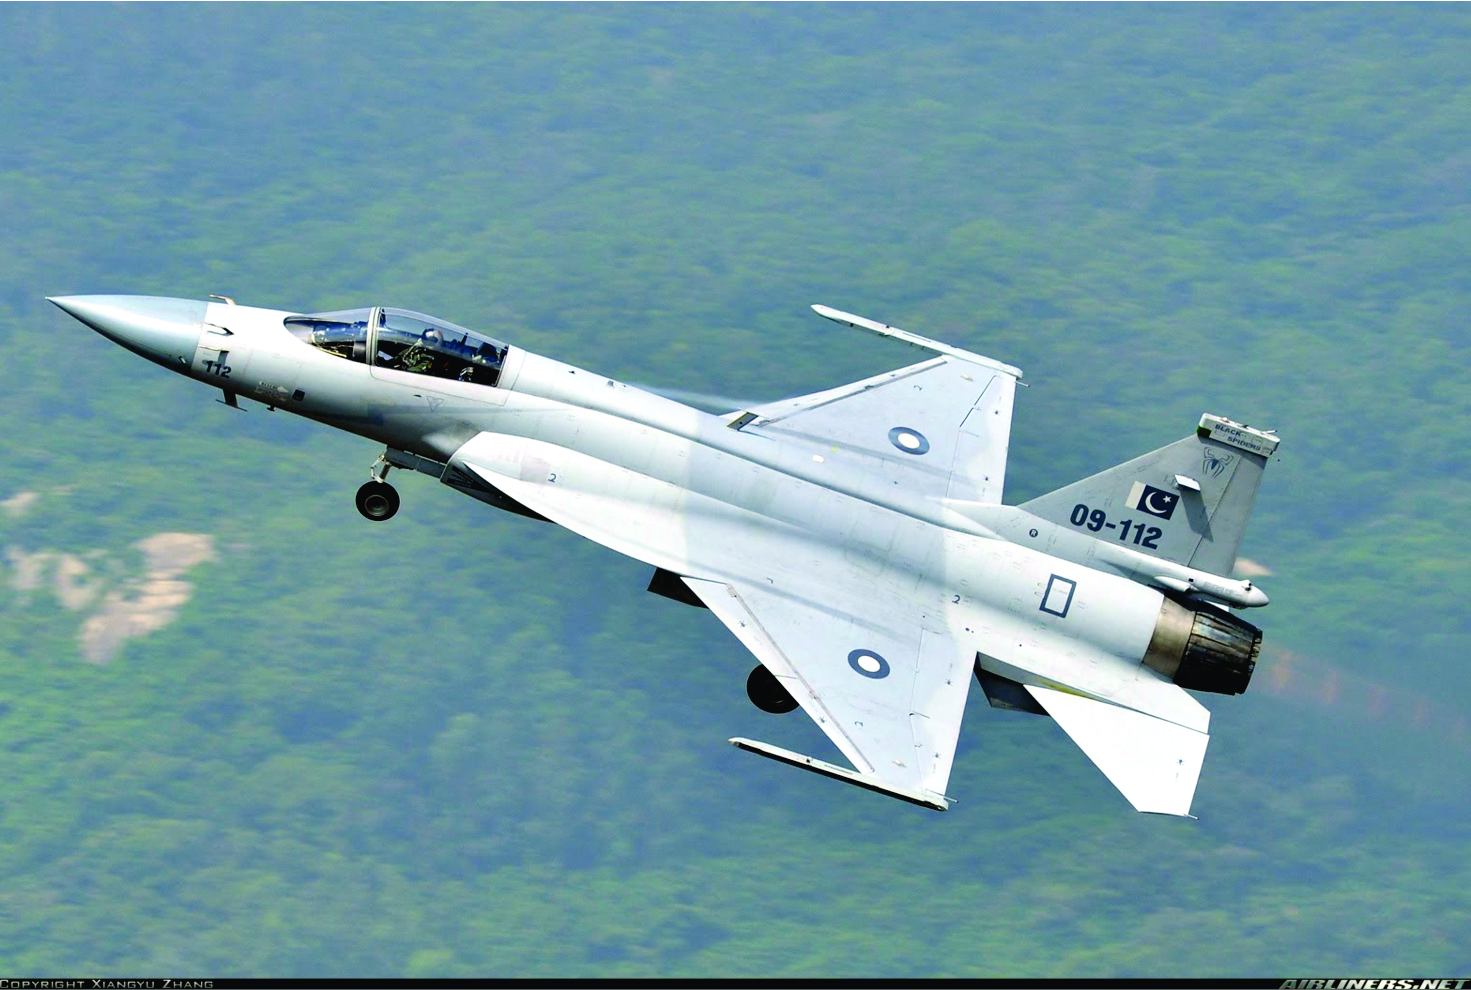 Pakistan own built fighter jet JF-17 Thunder